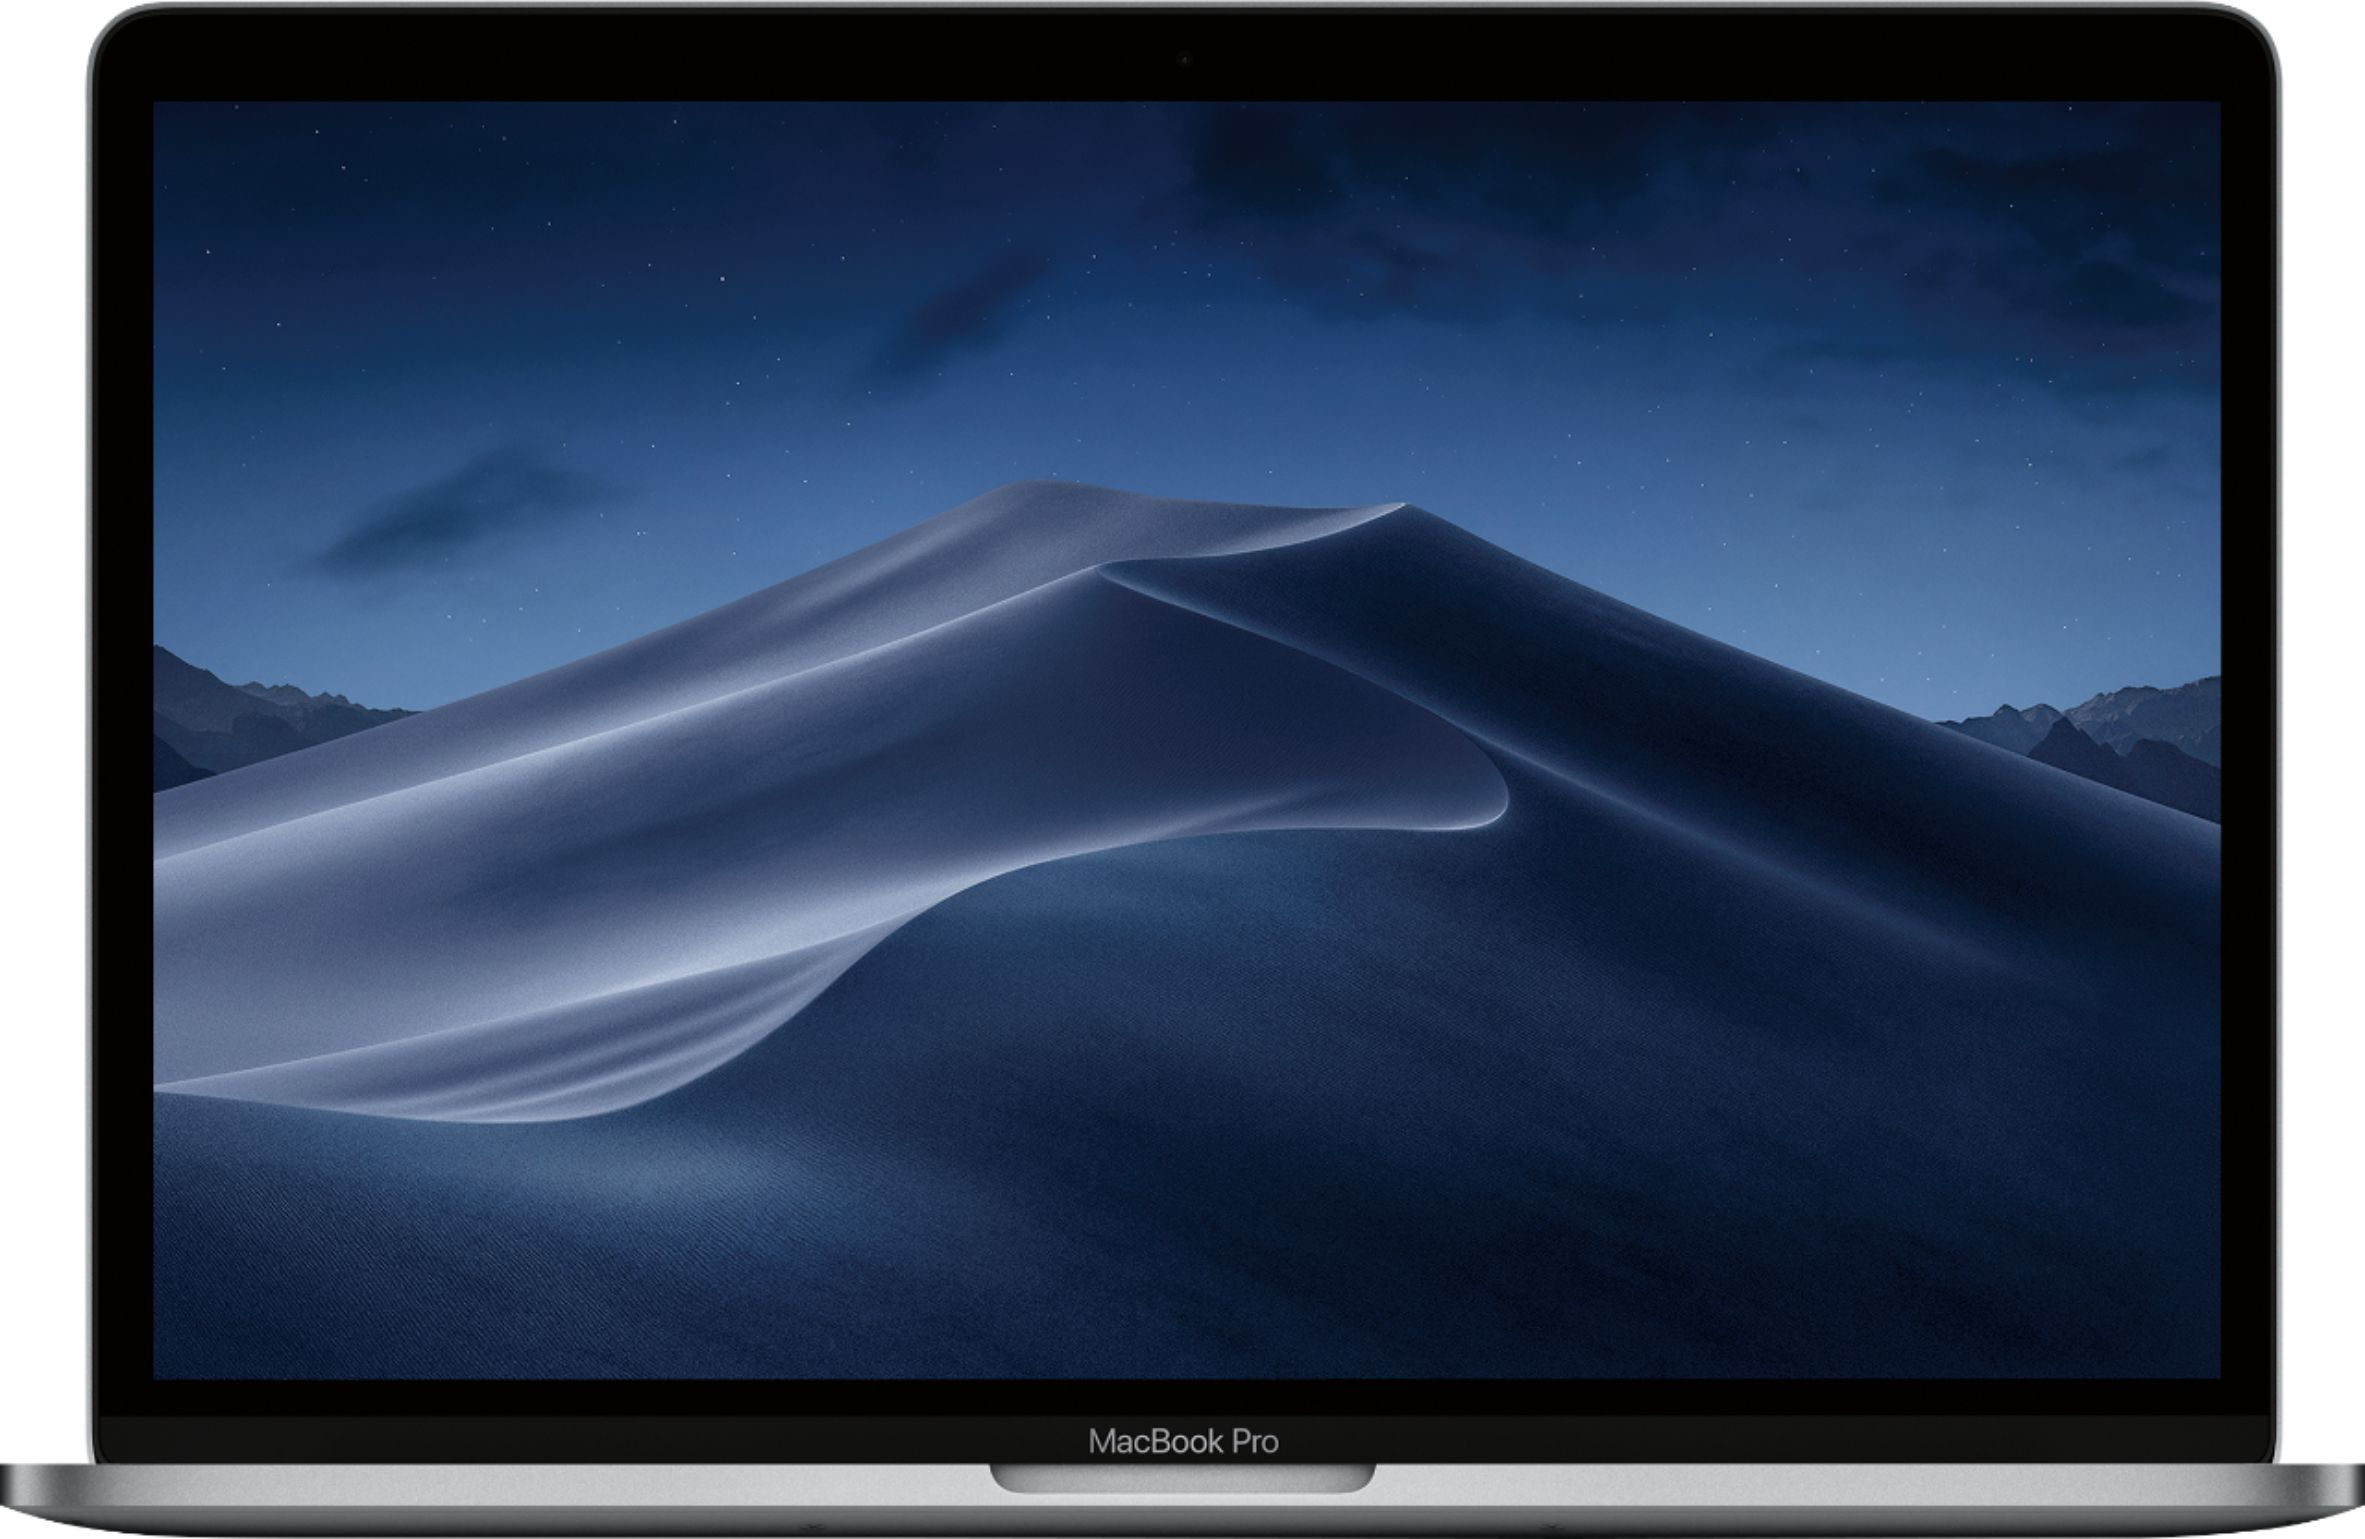 "Front Zoom. Apple - MacBook Pro 15.4"" Display with Touch Bar - Intel Core i9 - 32GB Memory - AMD Radeon Pro 560X - 1TB SSD - Space Gray."